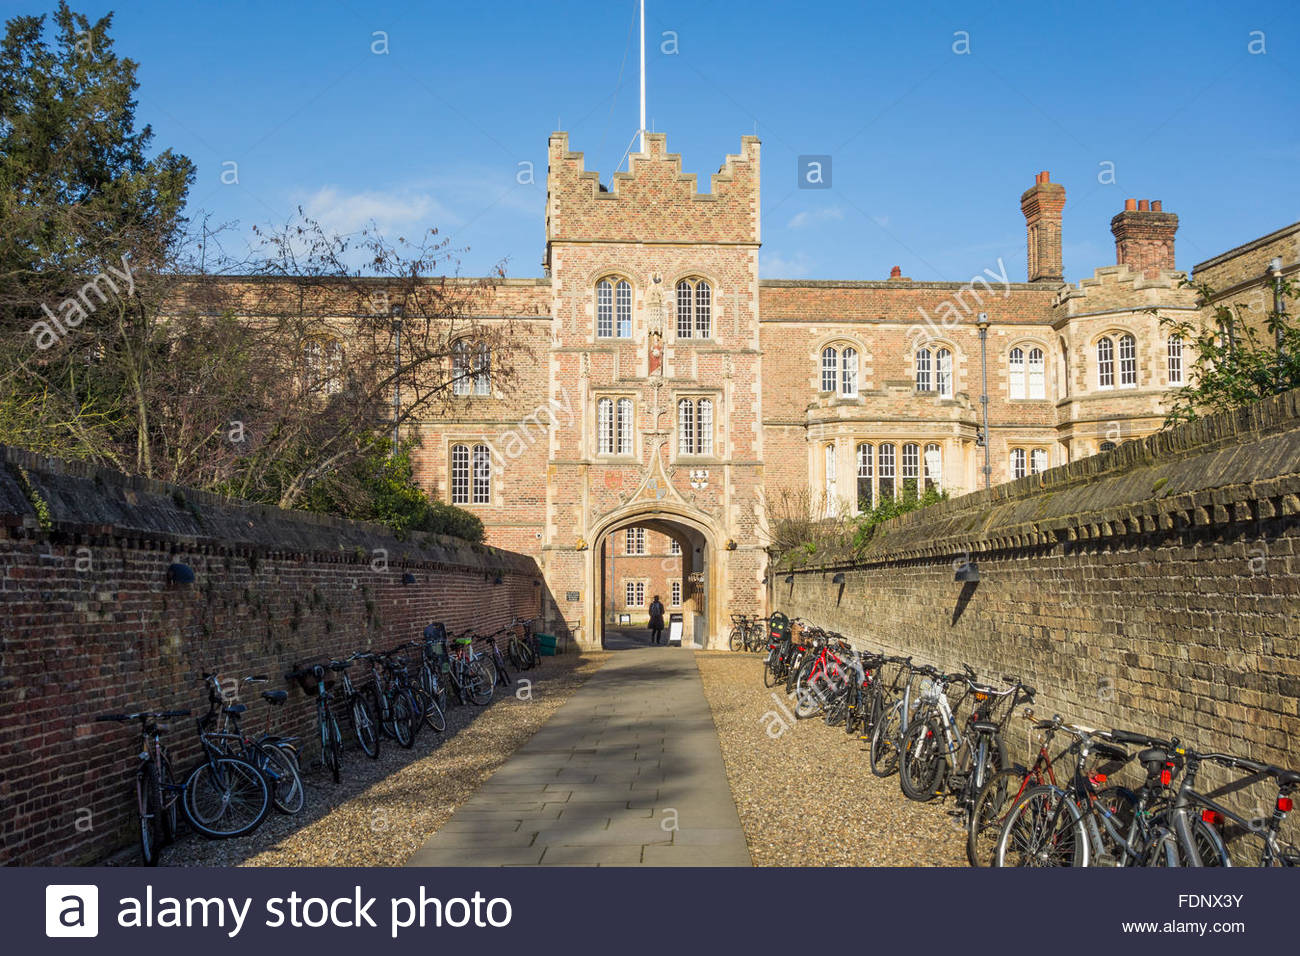 Jesus College Gatehouse, Cambridge, England, UK, part of the University of Cambridge (Cambridge University) Stock Photo